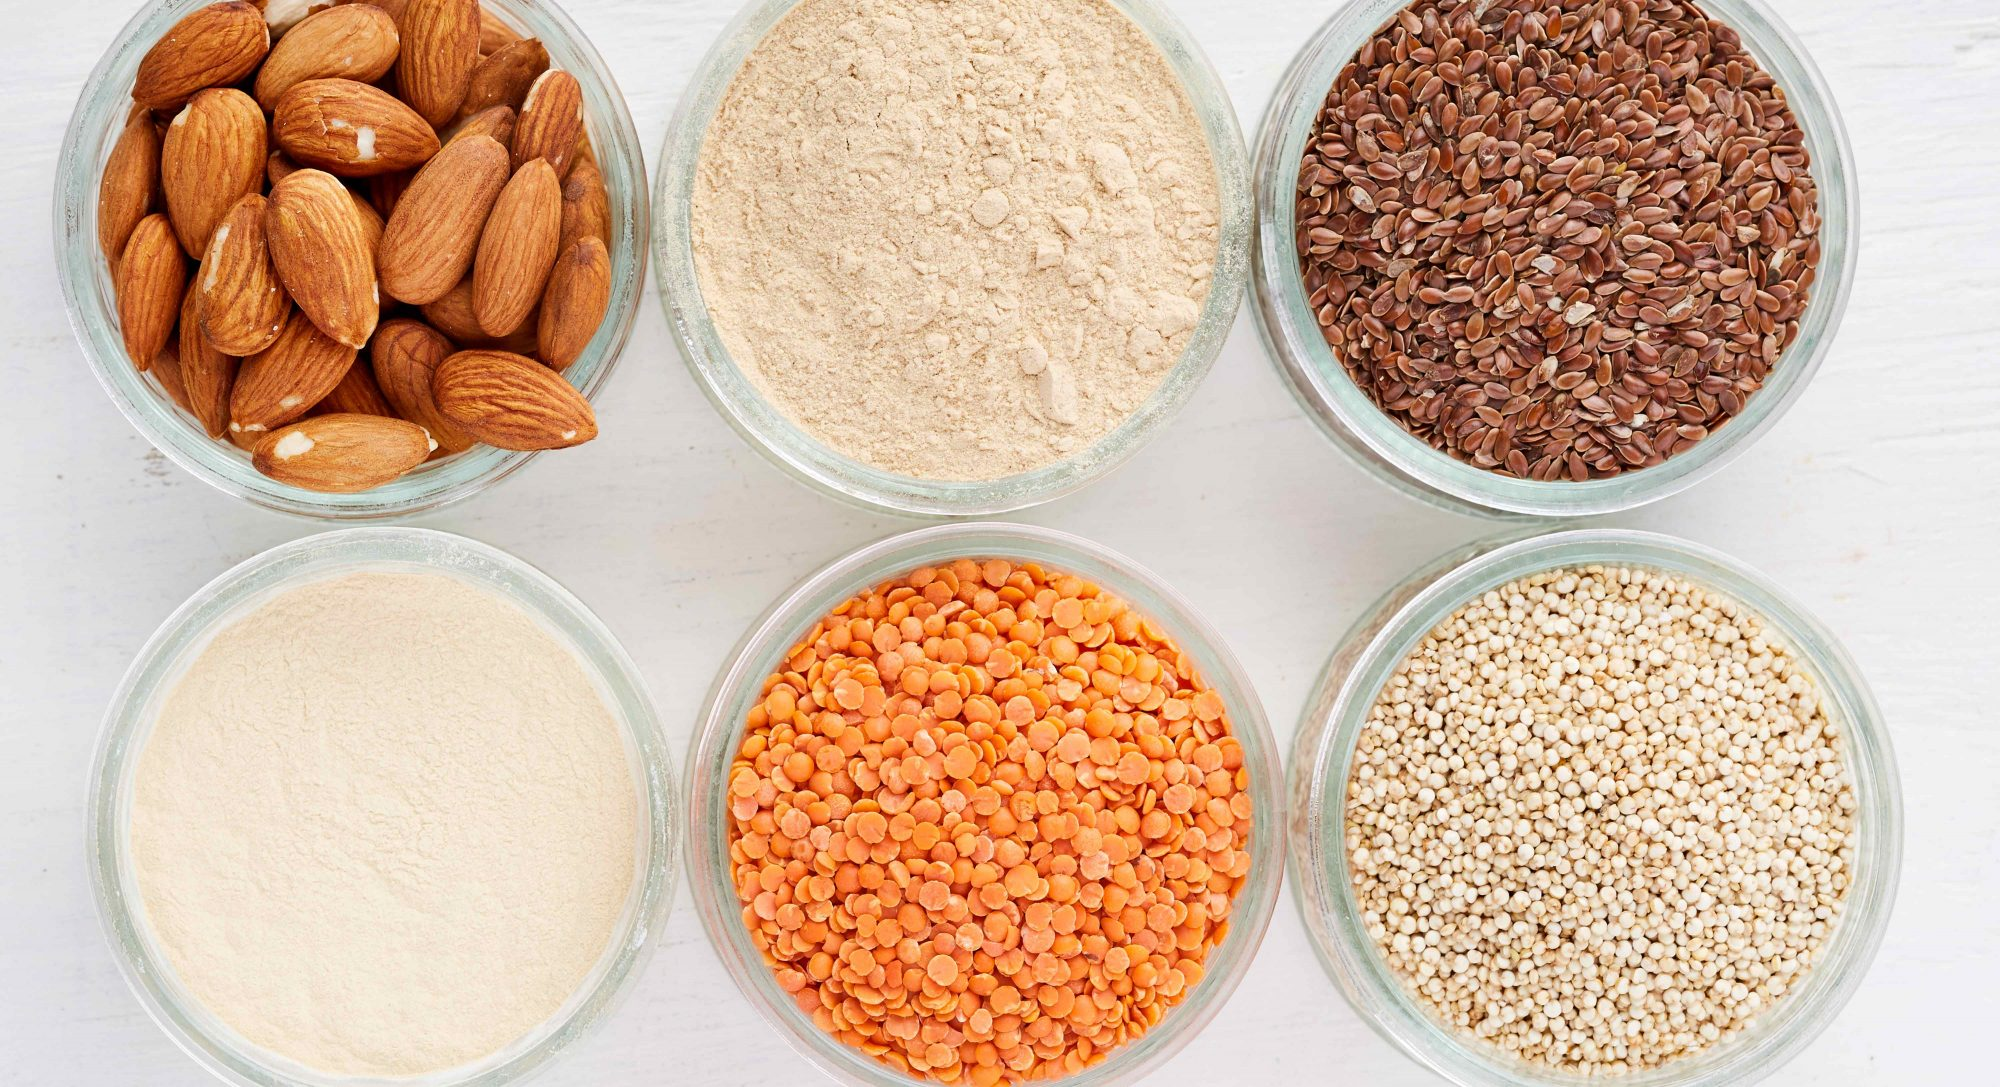 High Protein Vegan Foods You Should Try